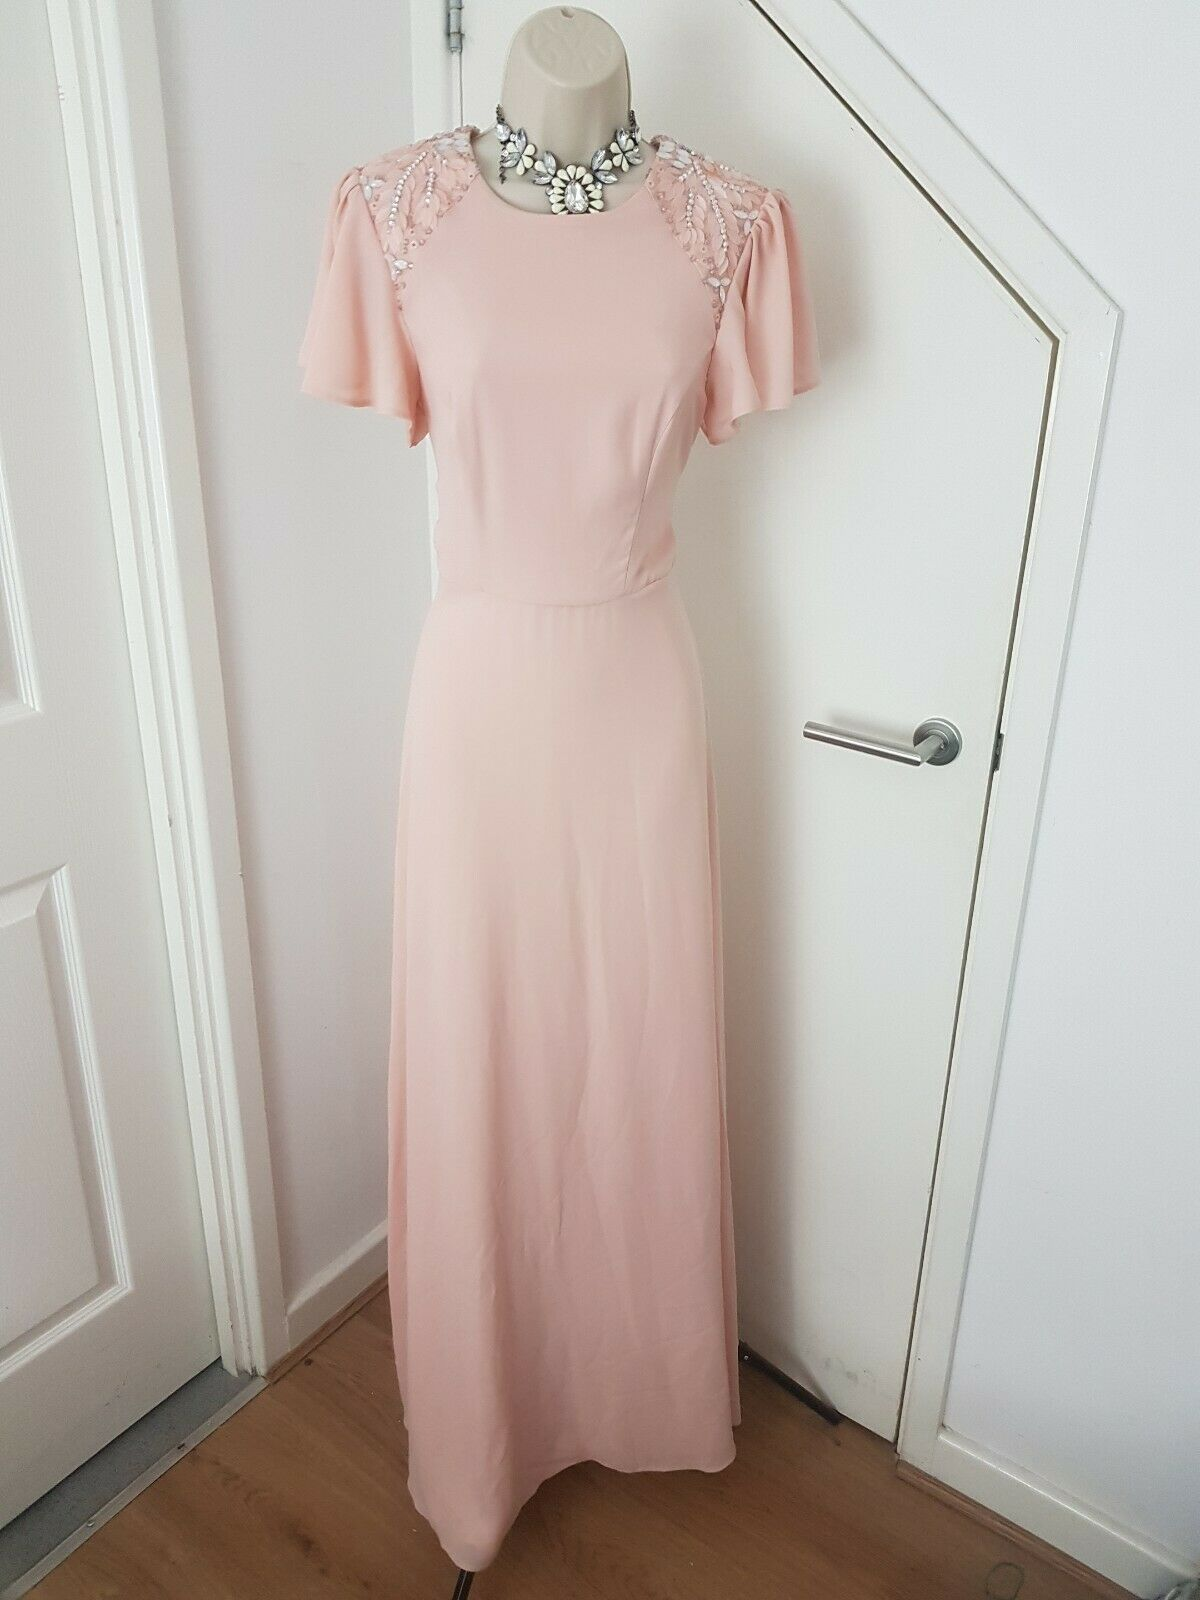 Asos Mother Of The Bride Groom Dress Maxi Beaded Cap Sleeves Occasion Pink UK10